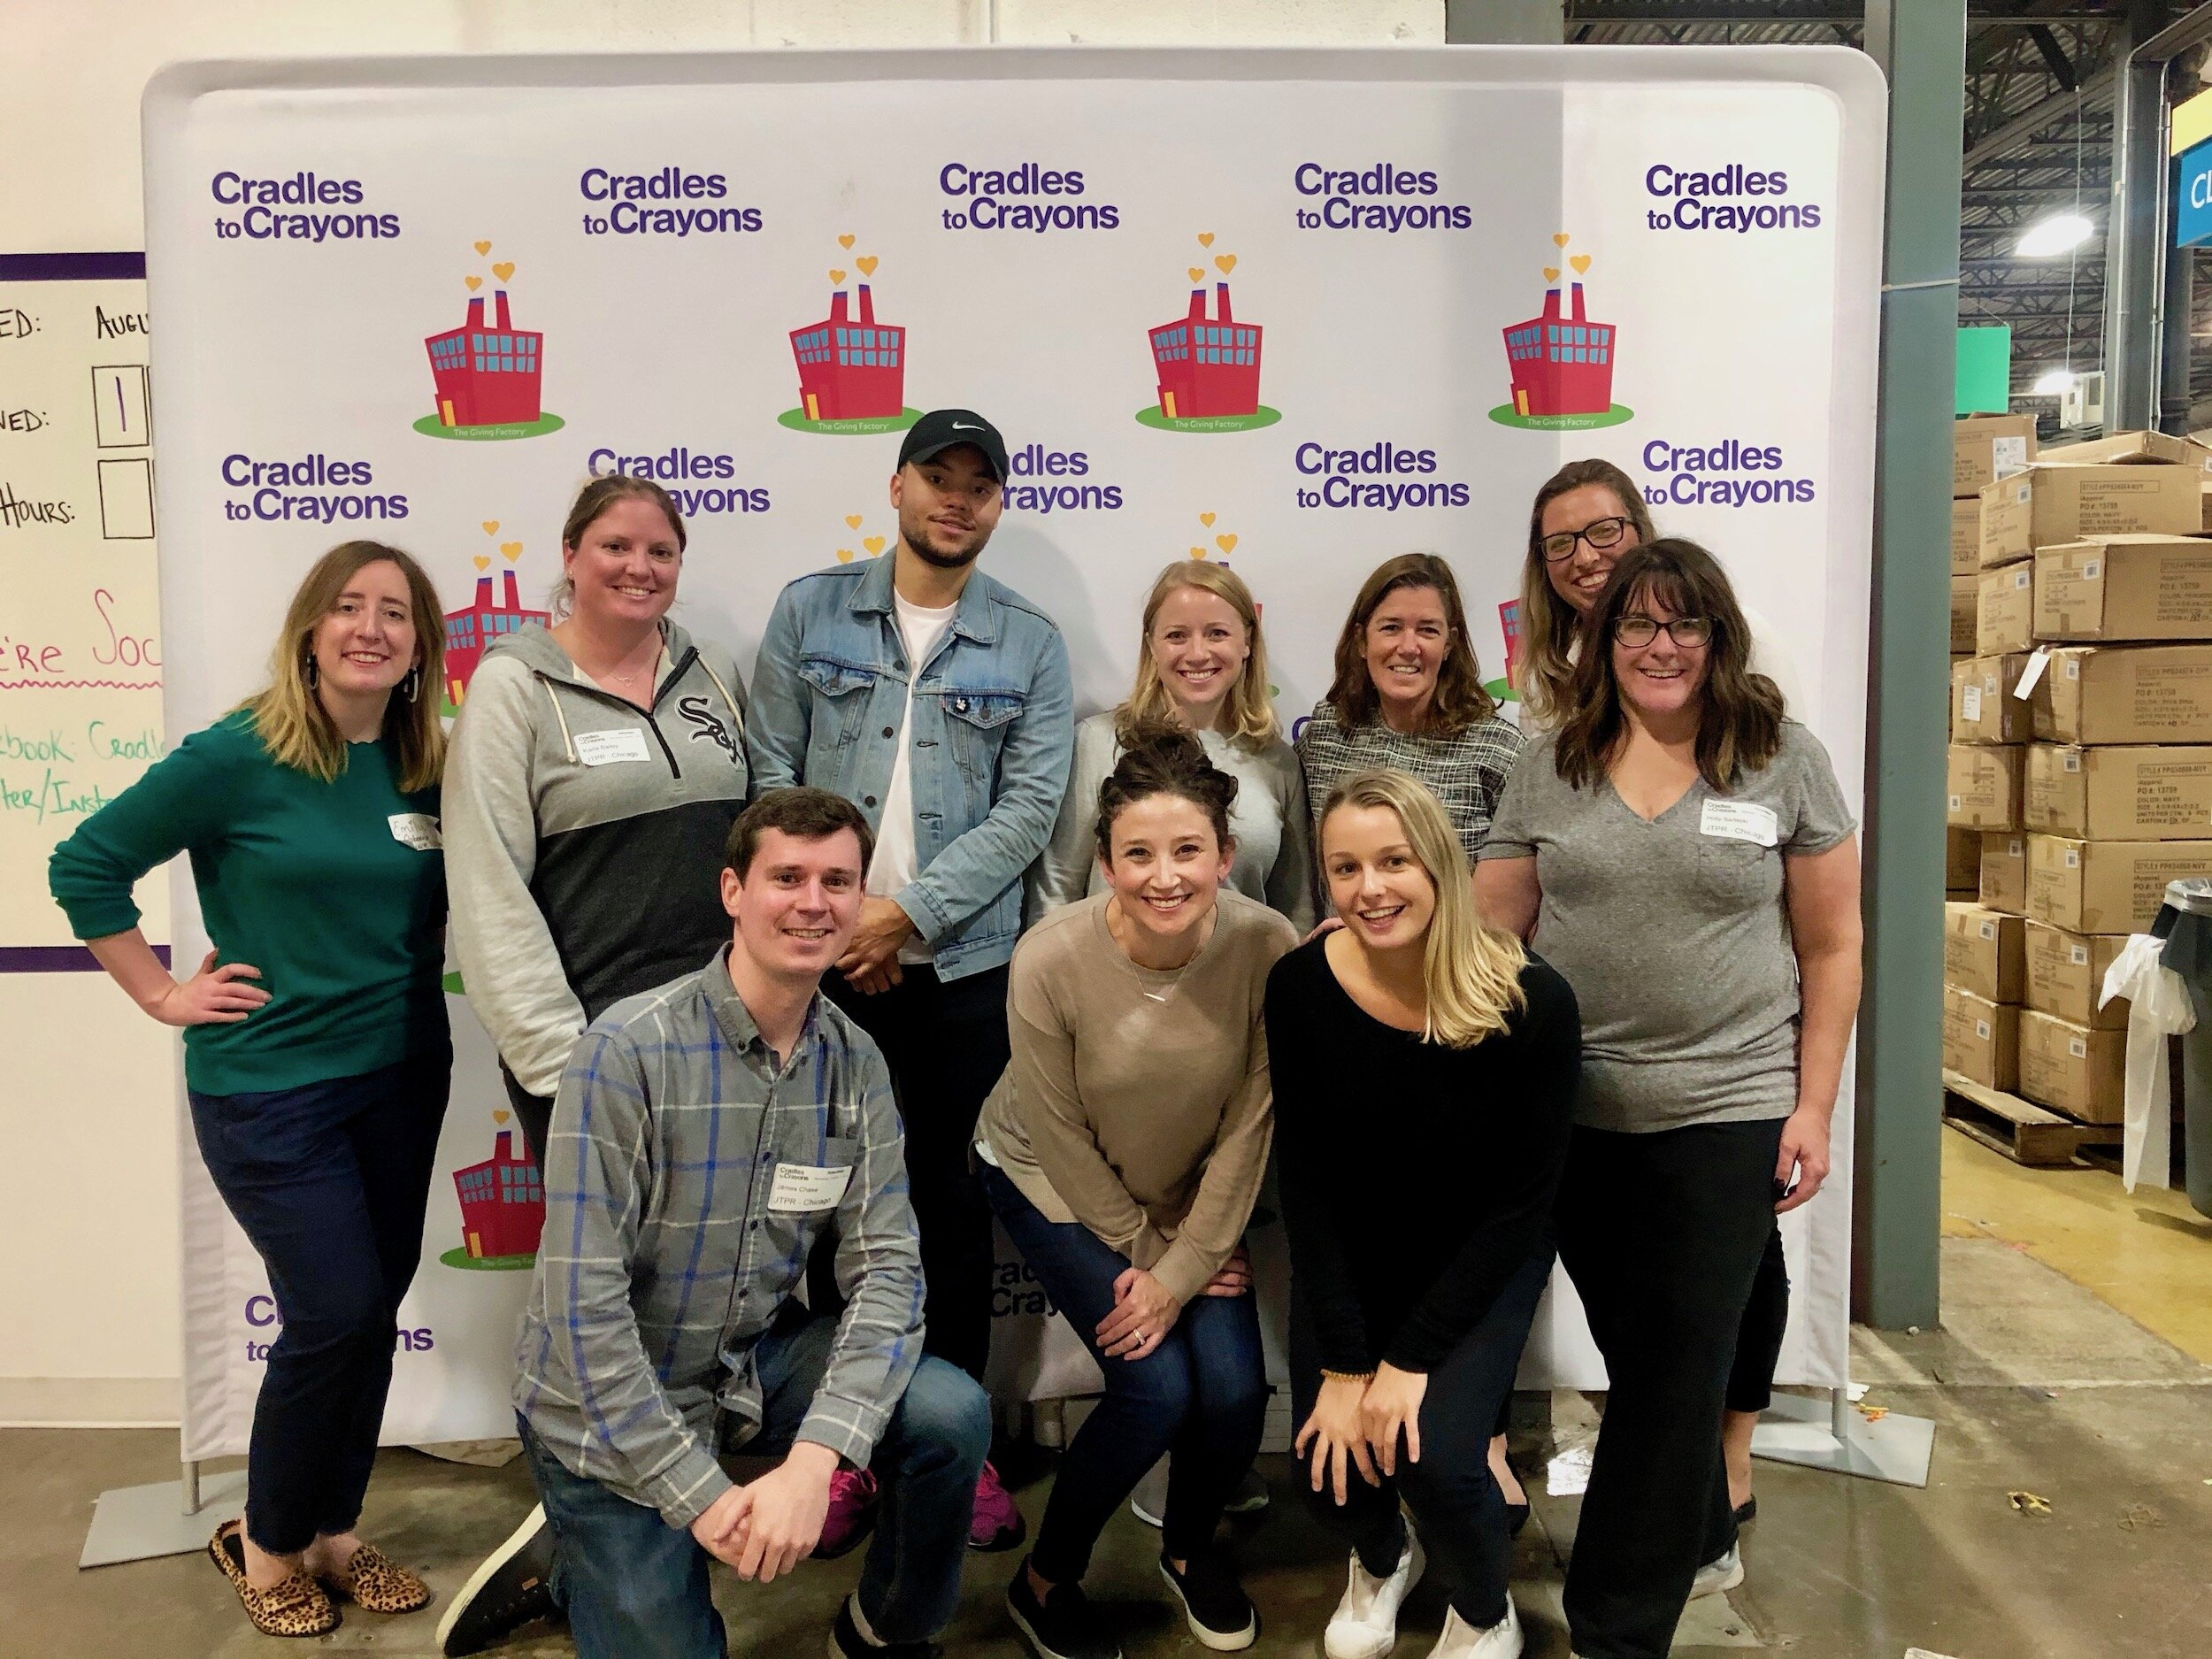 - JT team members volunteer at Cradles to Crayons, a non-profit that provides kids with the essentials they need.